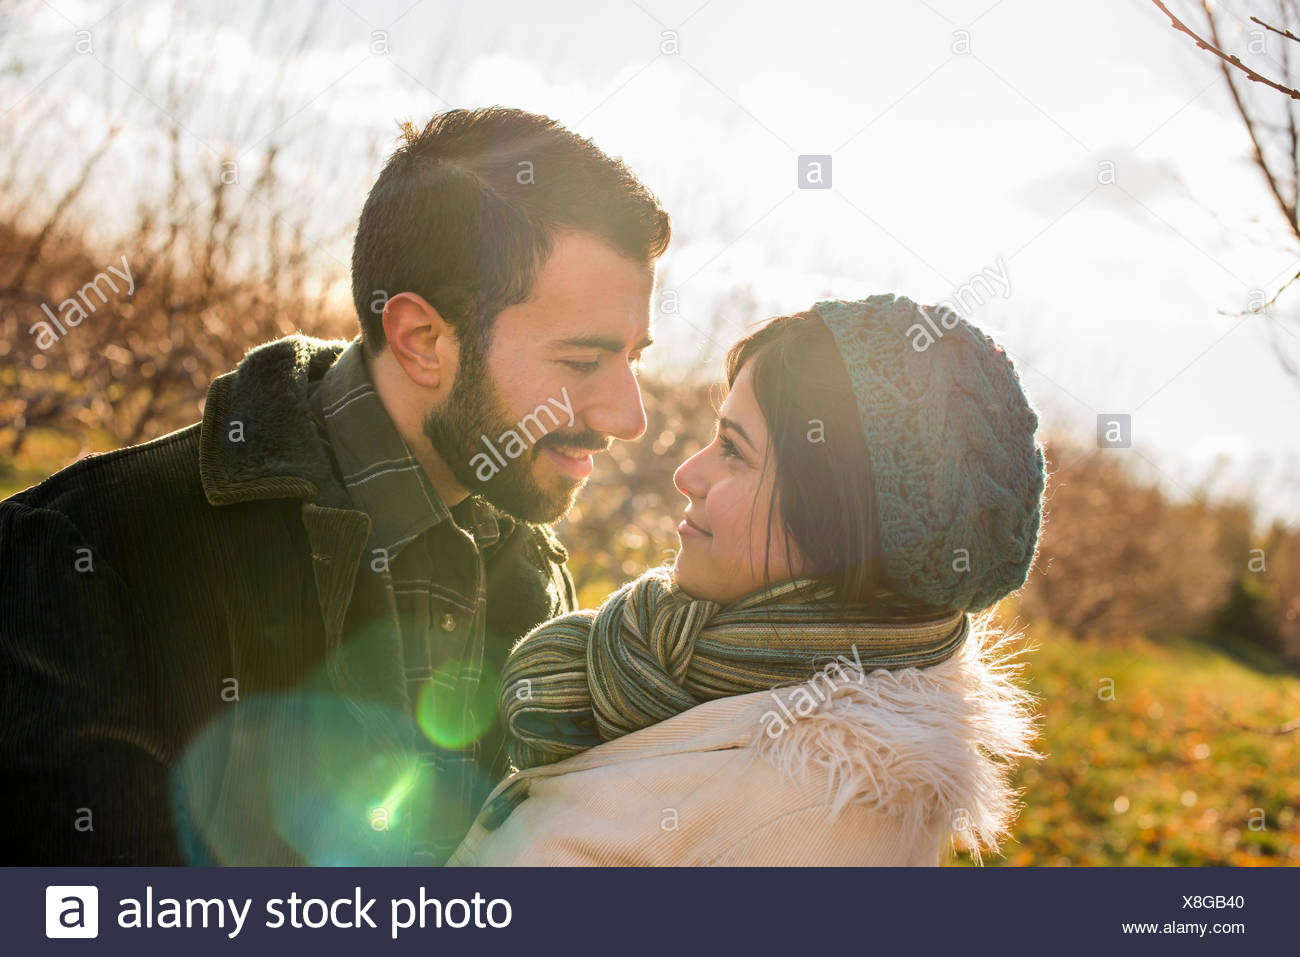 Two people, a couple walking in an orchard in winter. Stock Photo